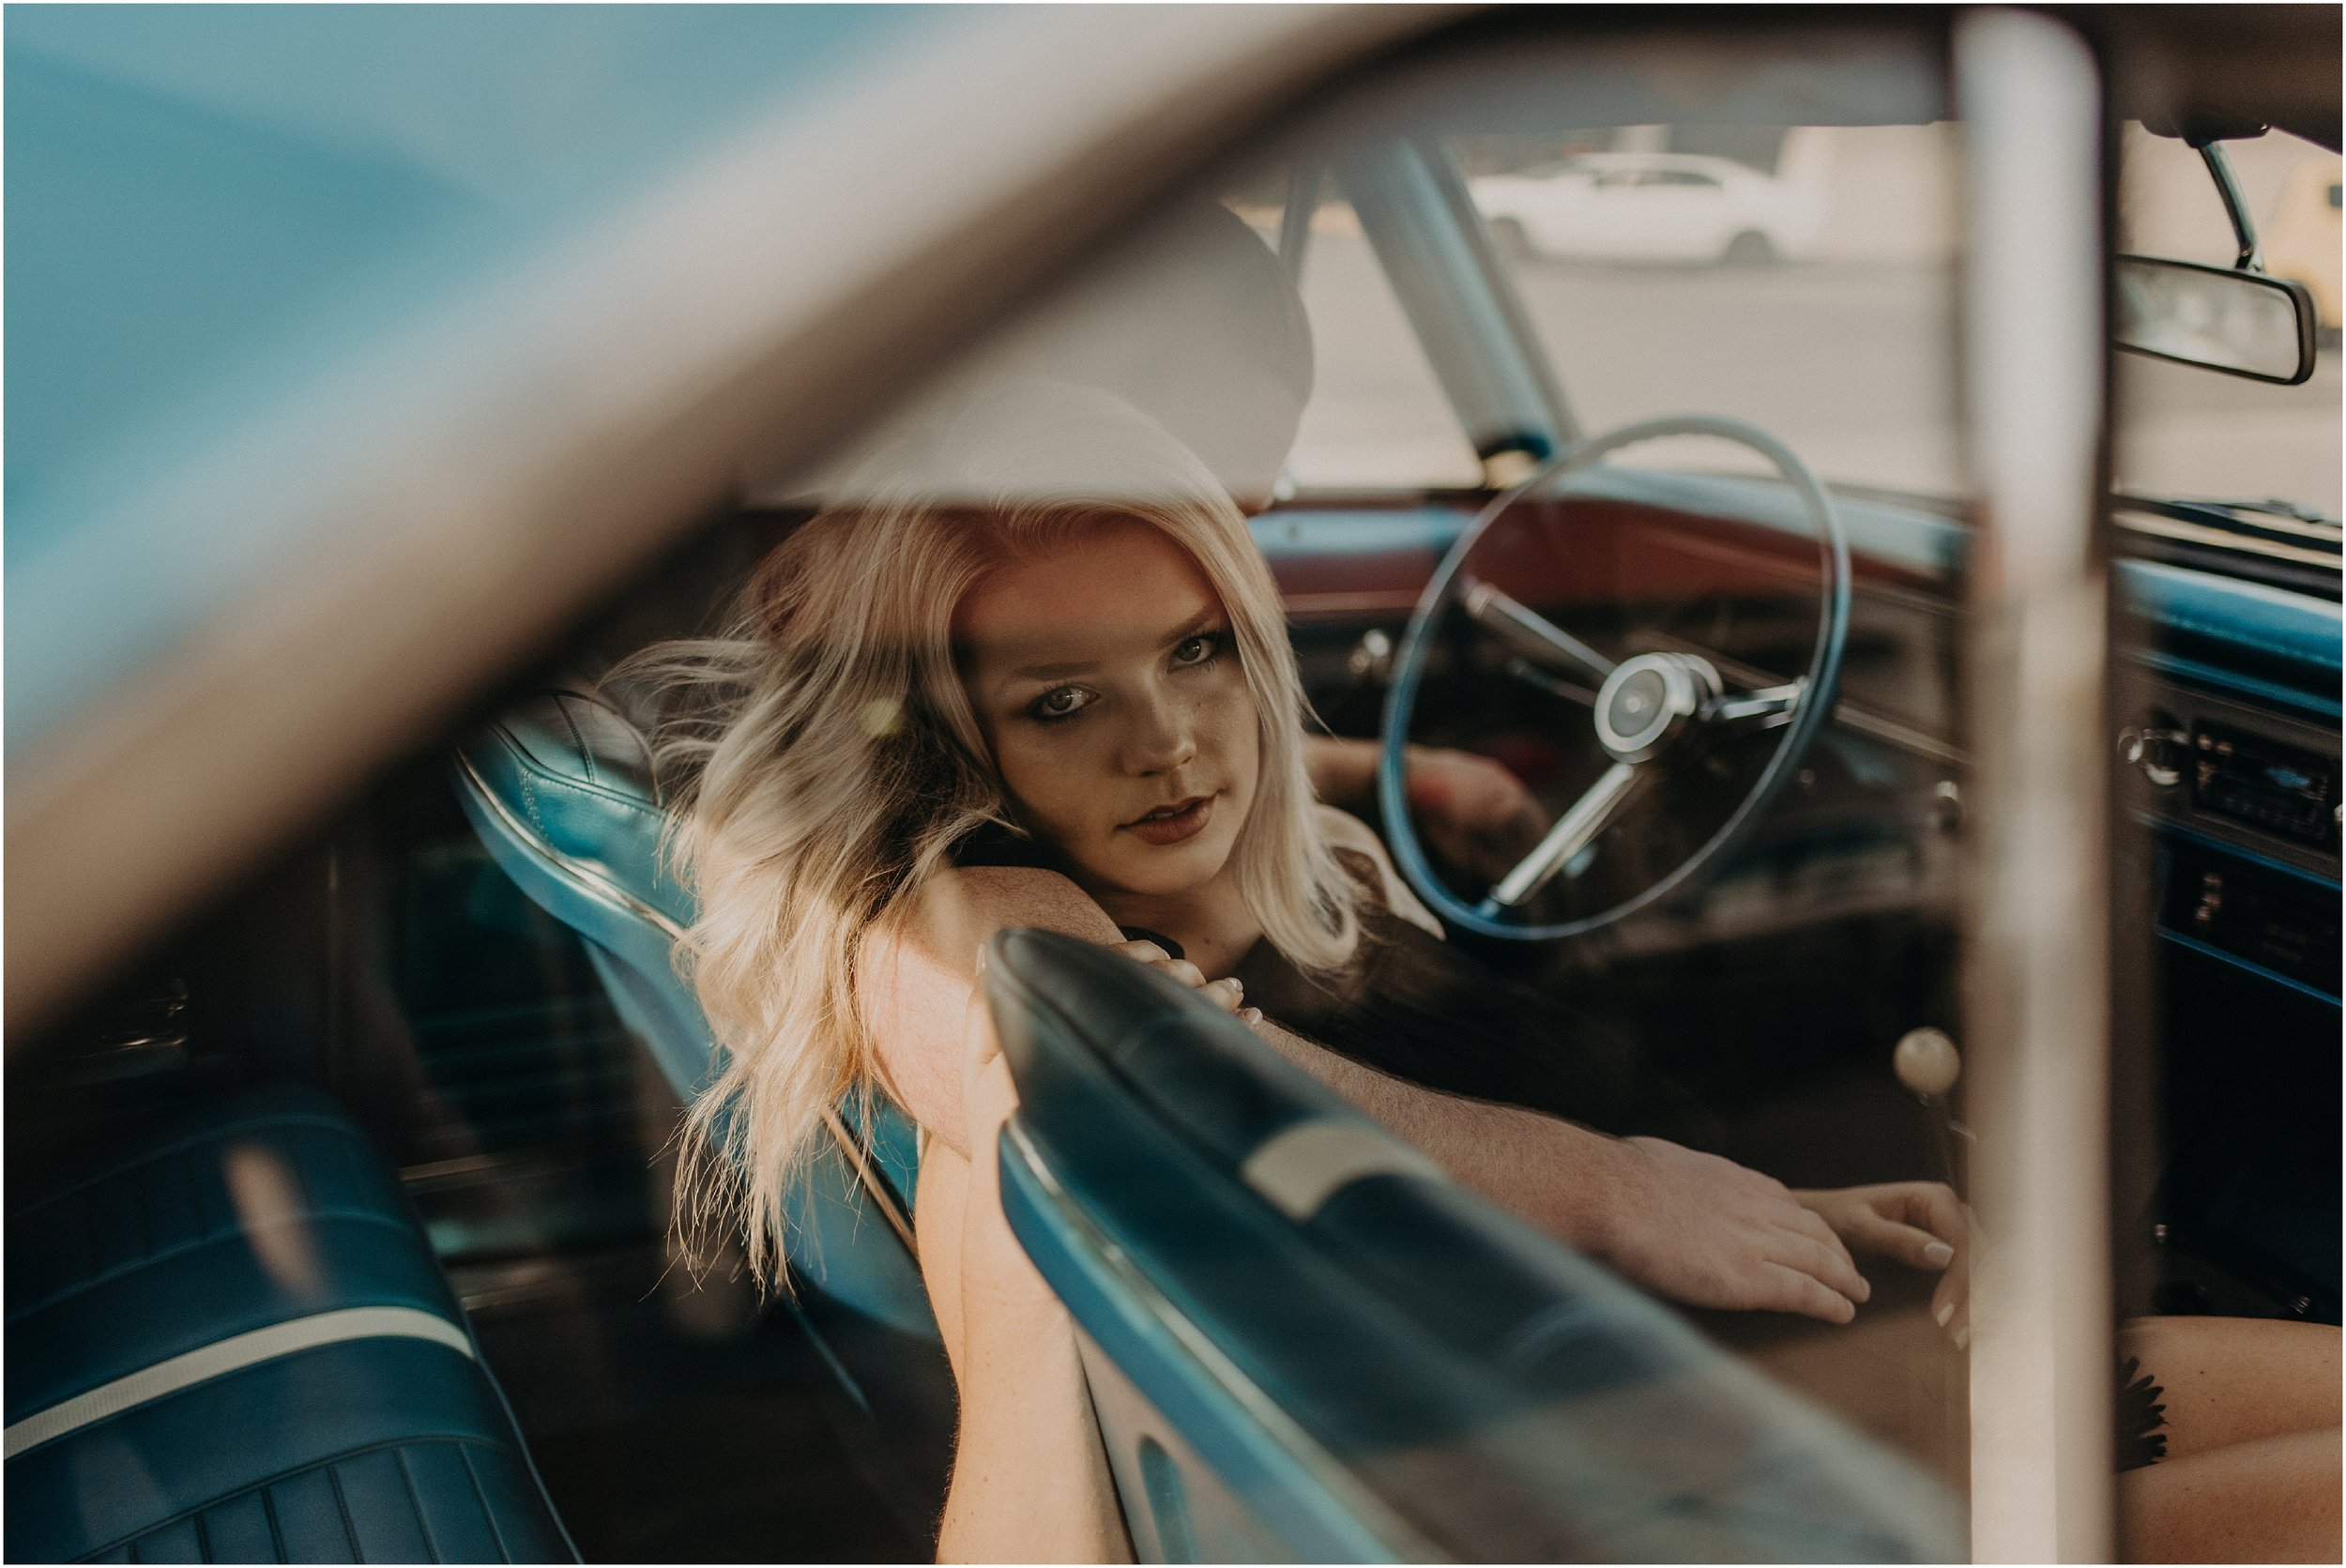 Blonde bombshell gives the camera a smoldering look during her engagement photos inside of a Chevy Nova SS